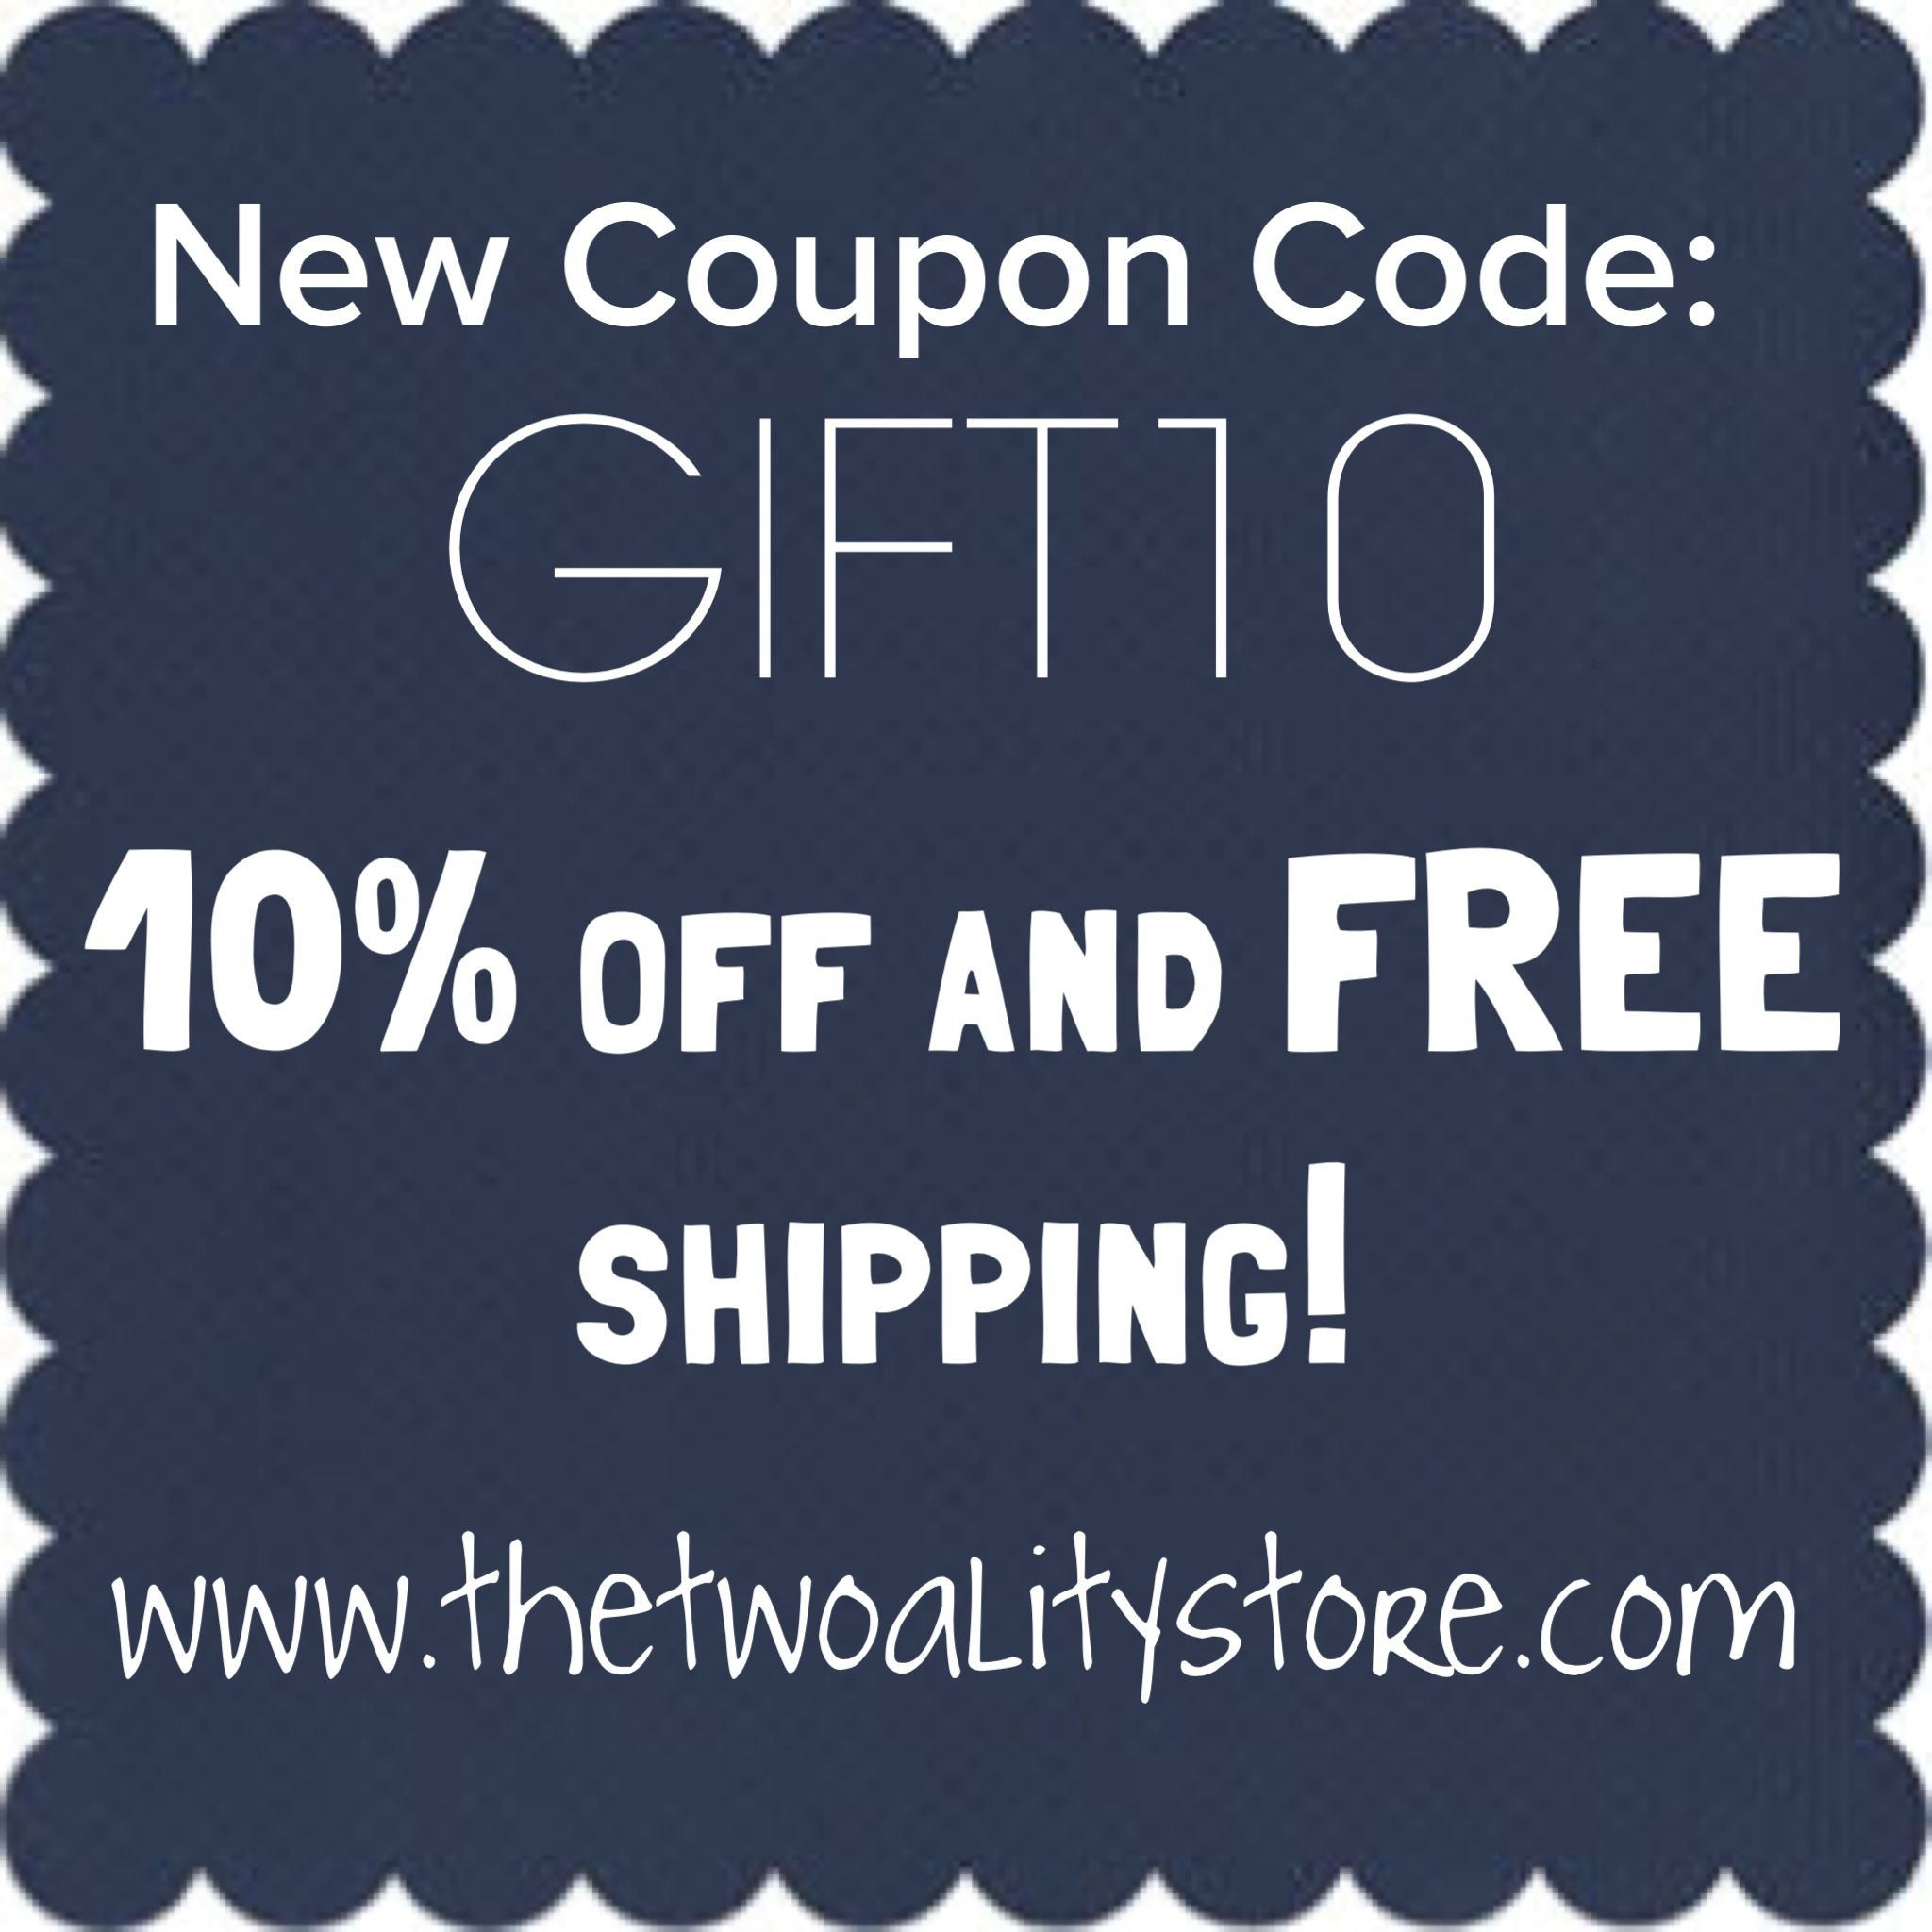 Enter Coupon Code Gift10 At Checkout To Receive 10 Off Your Order And Free Shipping No Minimum Purchase Necessary Cou Coding Coupon Codes New Fashion Trends